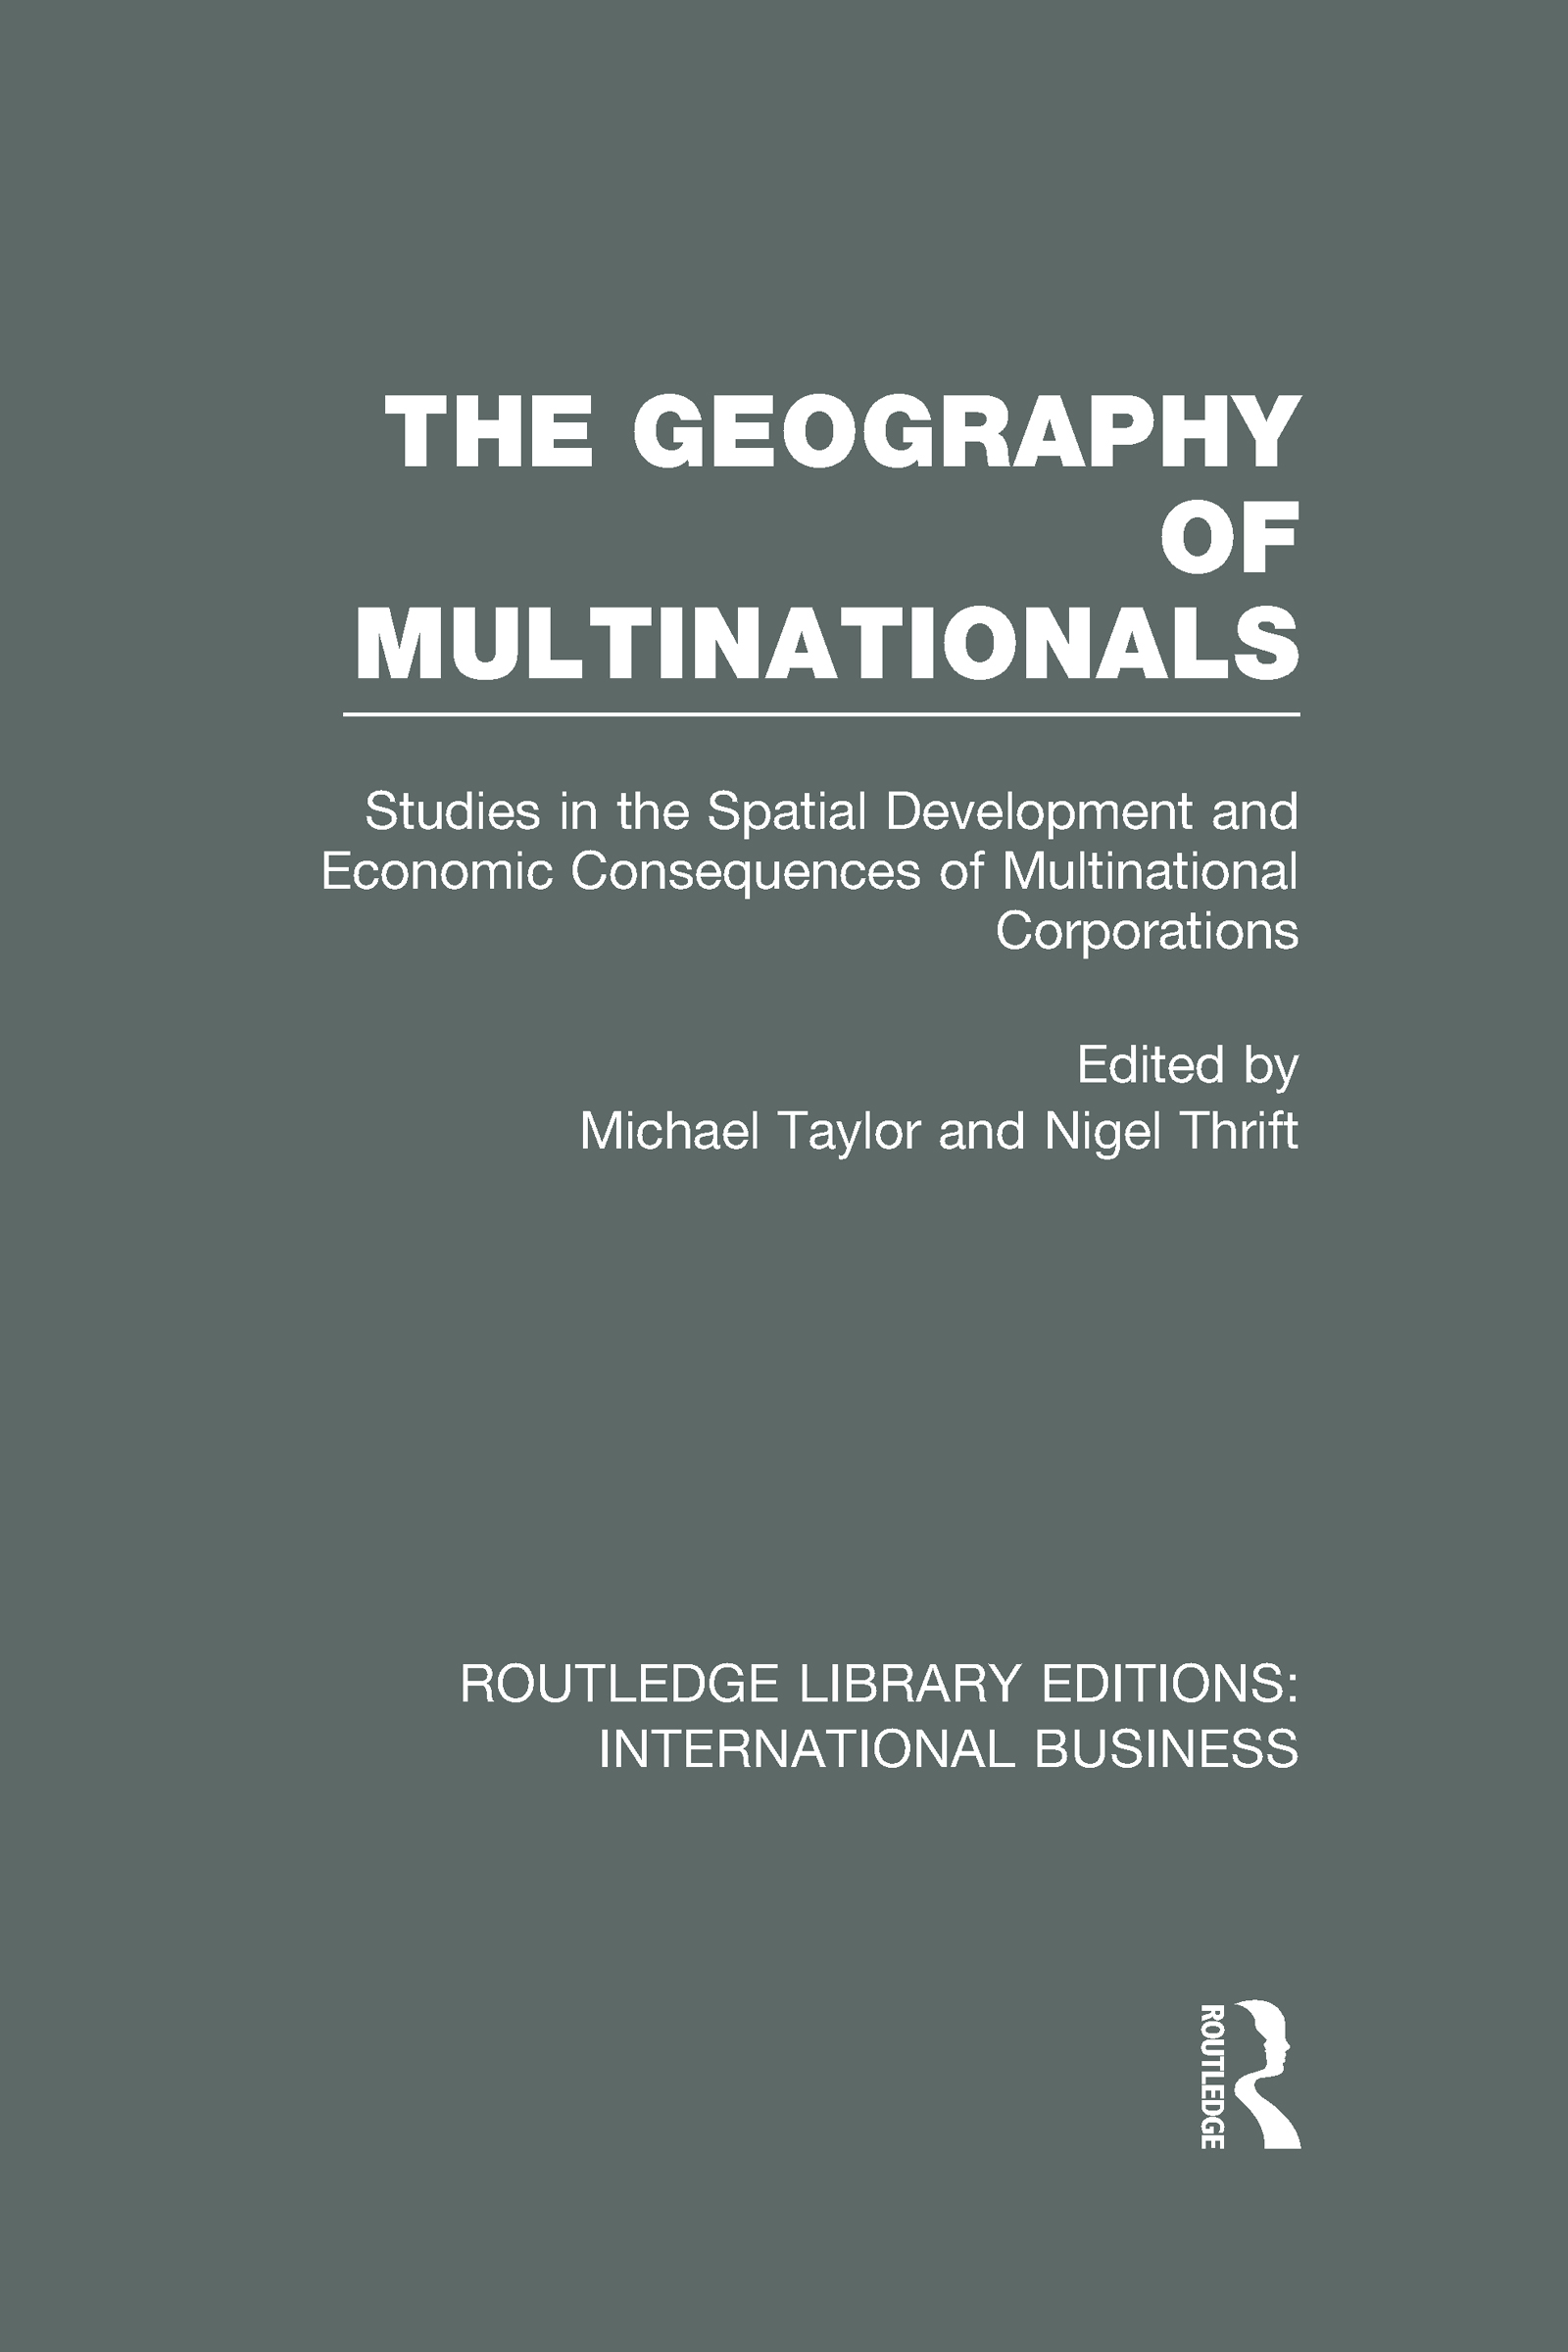 The Geography of Multinationals (RLE International Business): Studies in the Spatial Development and Economic Consequences of Multinational Corporations. (Hardback) book cover